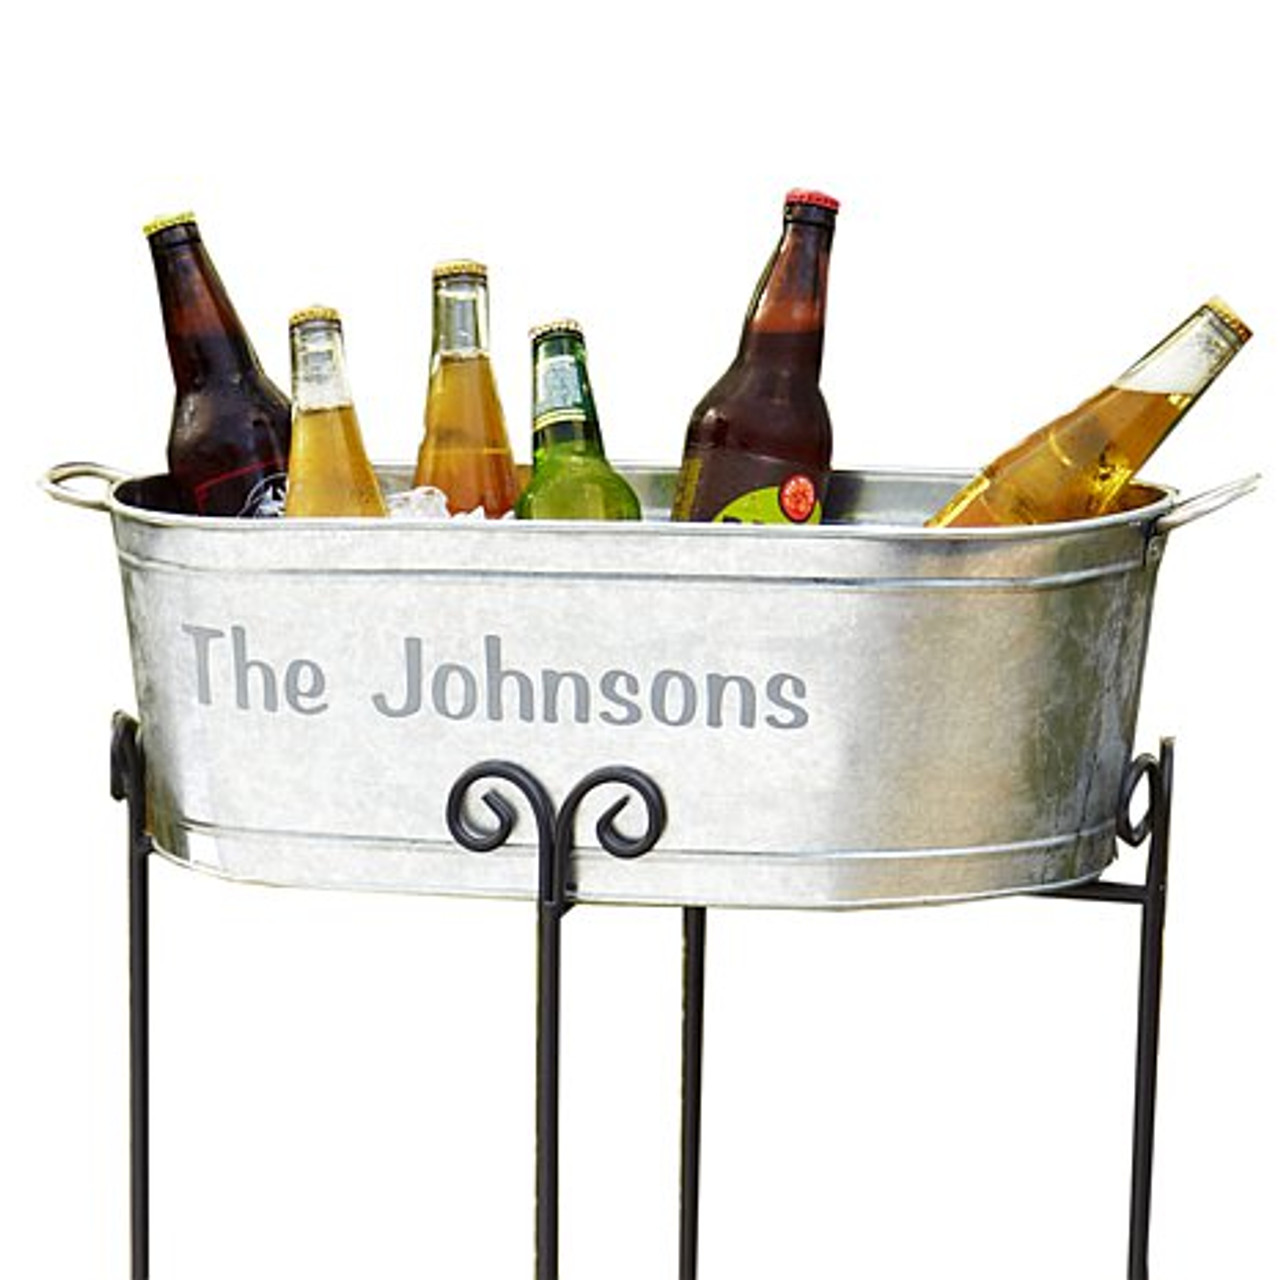 Custom, Personalized, Ice, Beer, Tub, Bucket, Bar, Wedding, Ice-Bucket, Beer Tub, Bar Back, nevera,neverita